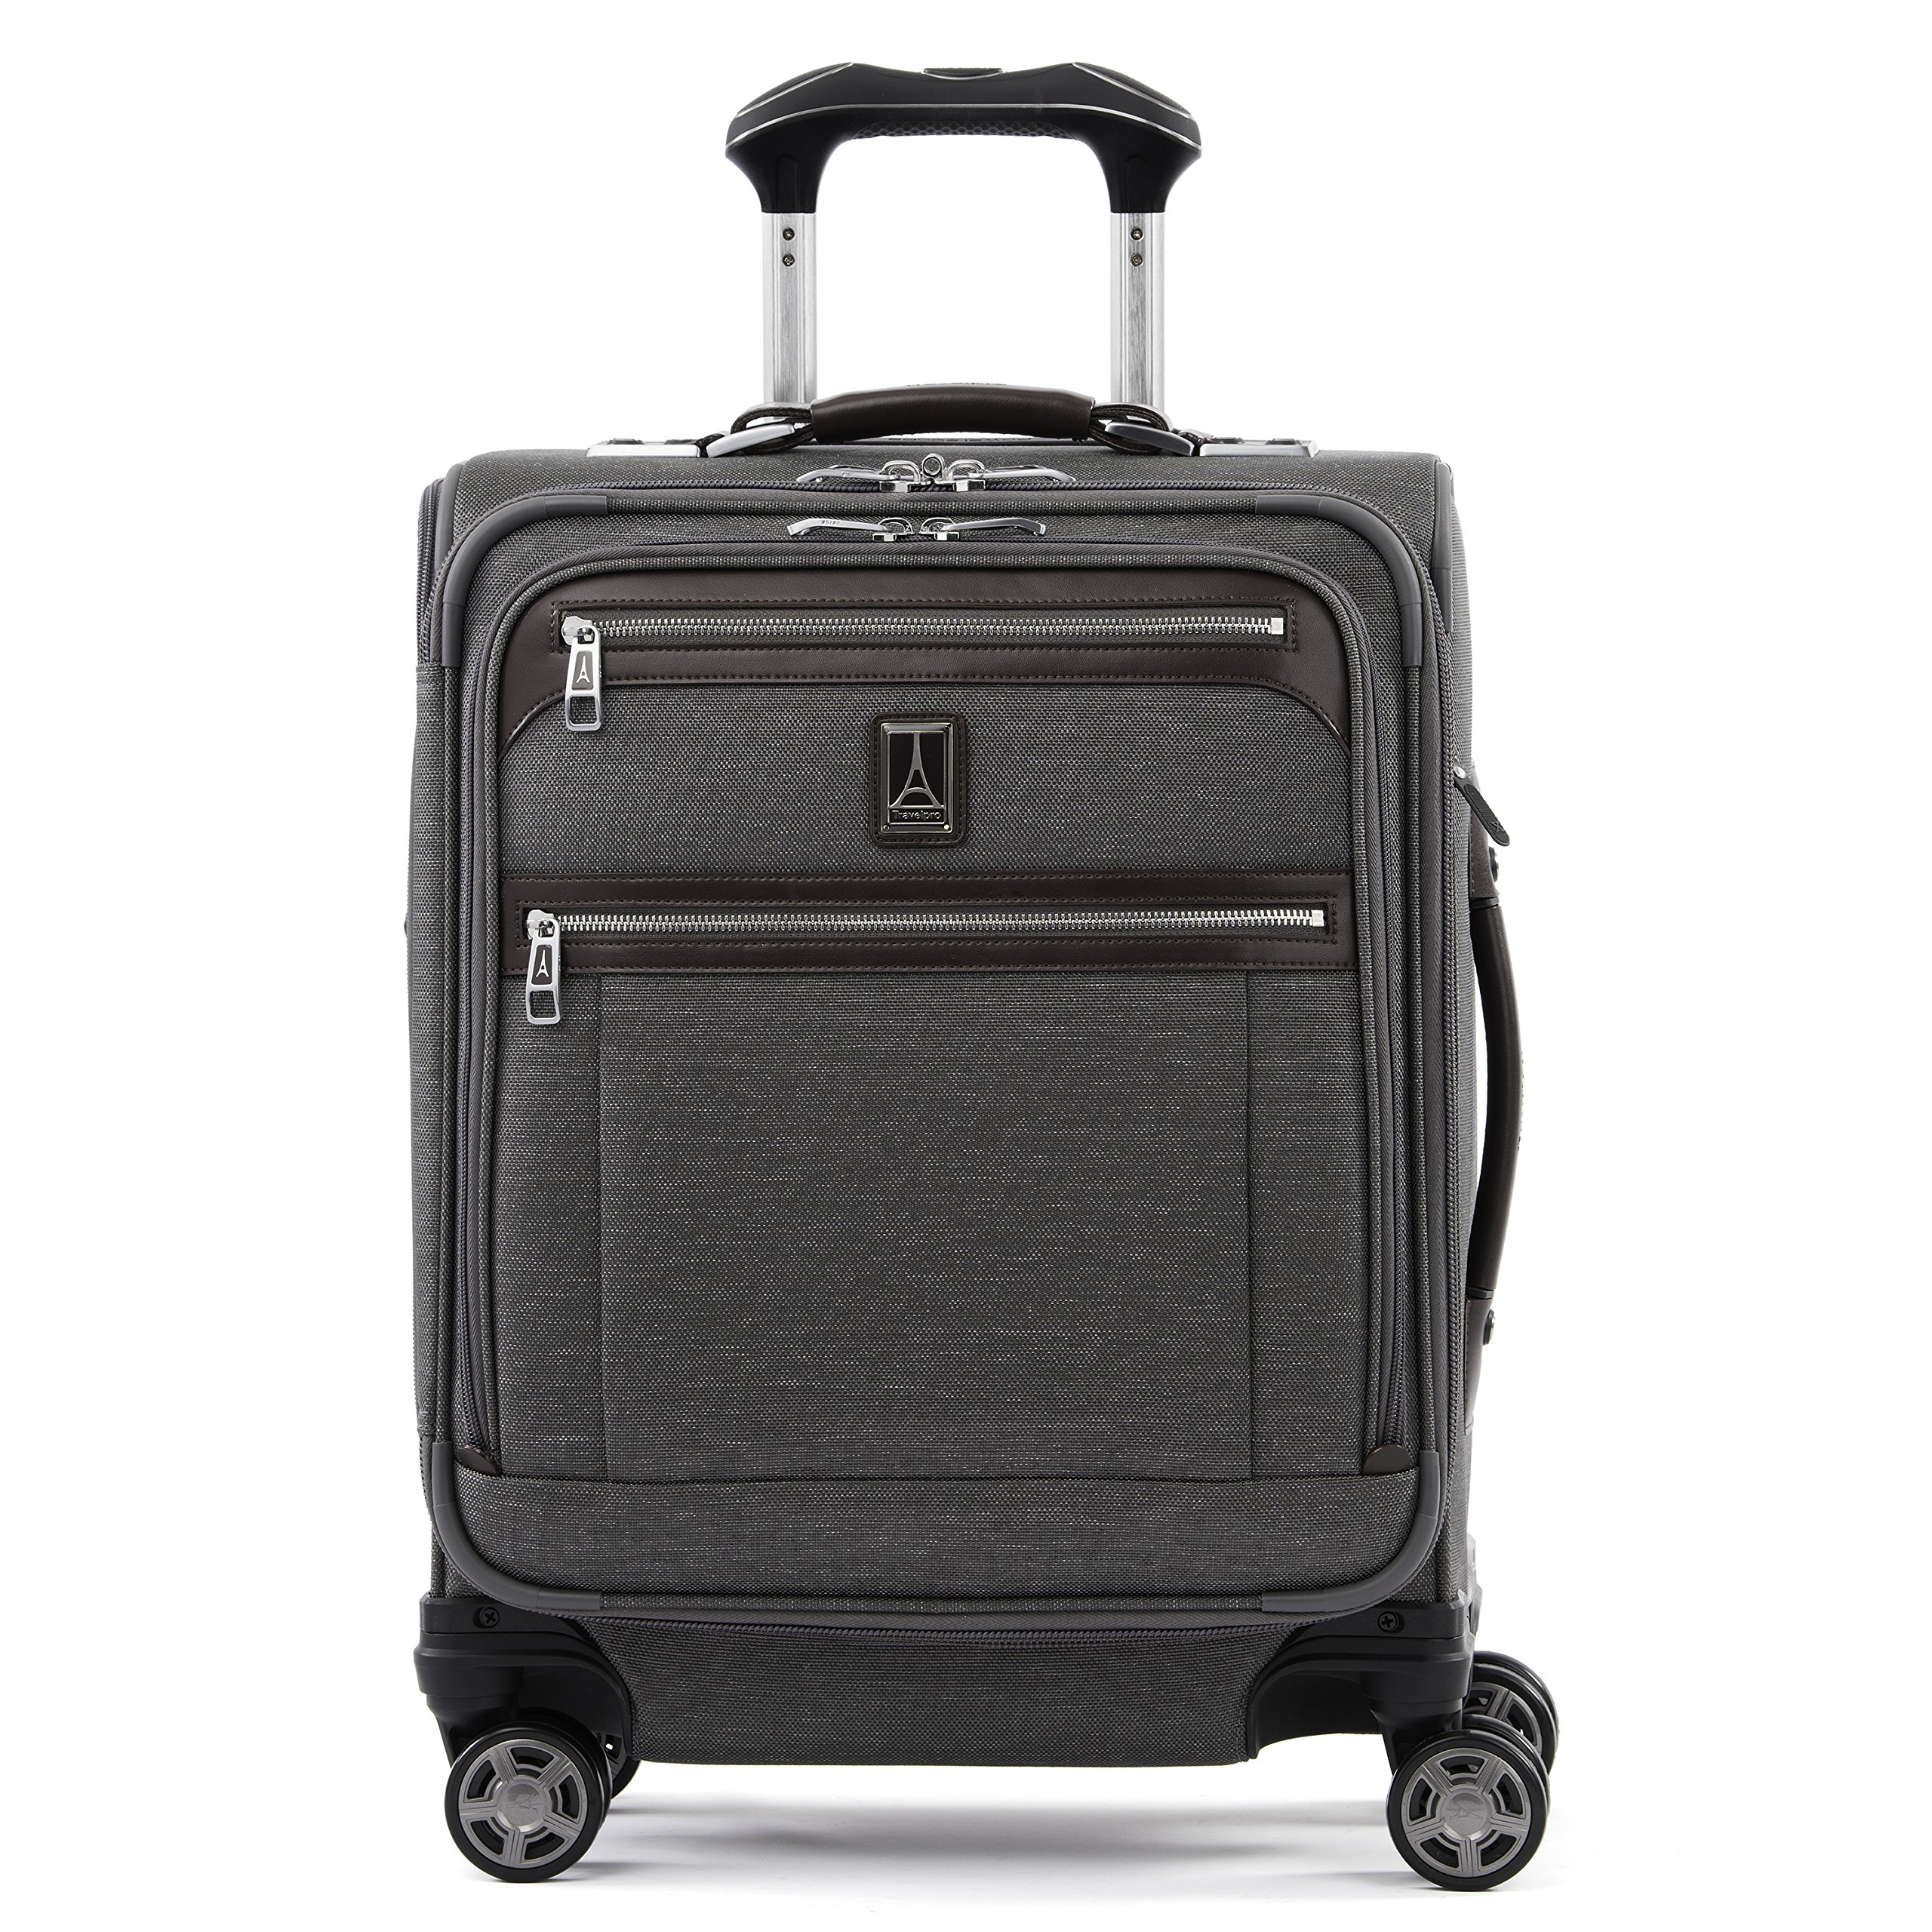 Travelpro Luggage Platinum Elite 20'' Carry-on Intl Expandable Spinner w/USB Port, Vintage Grey